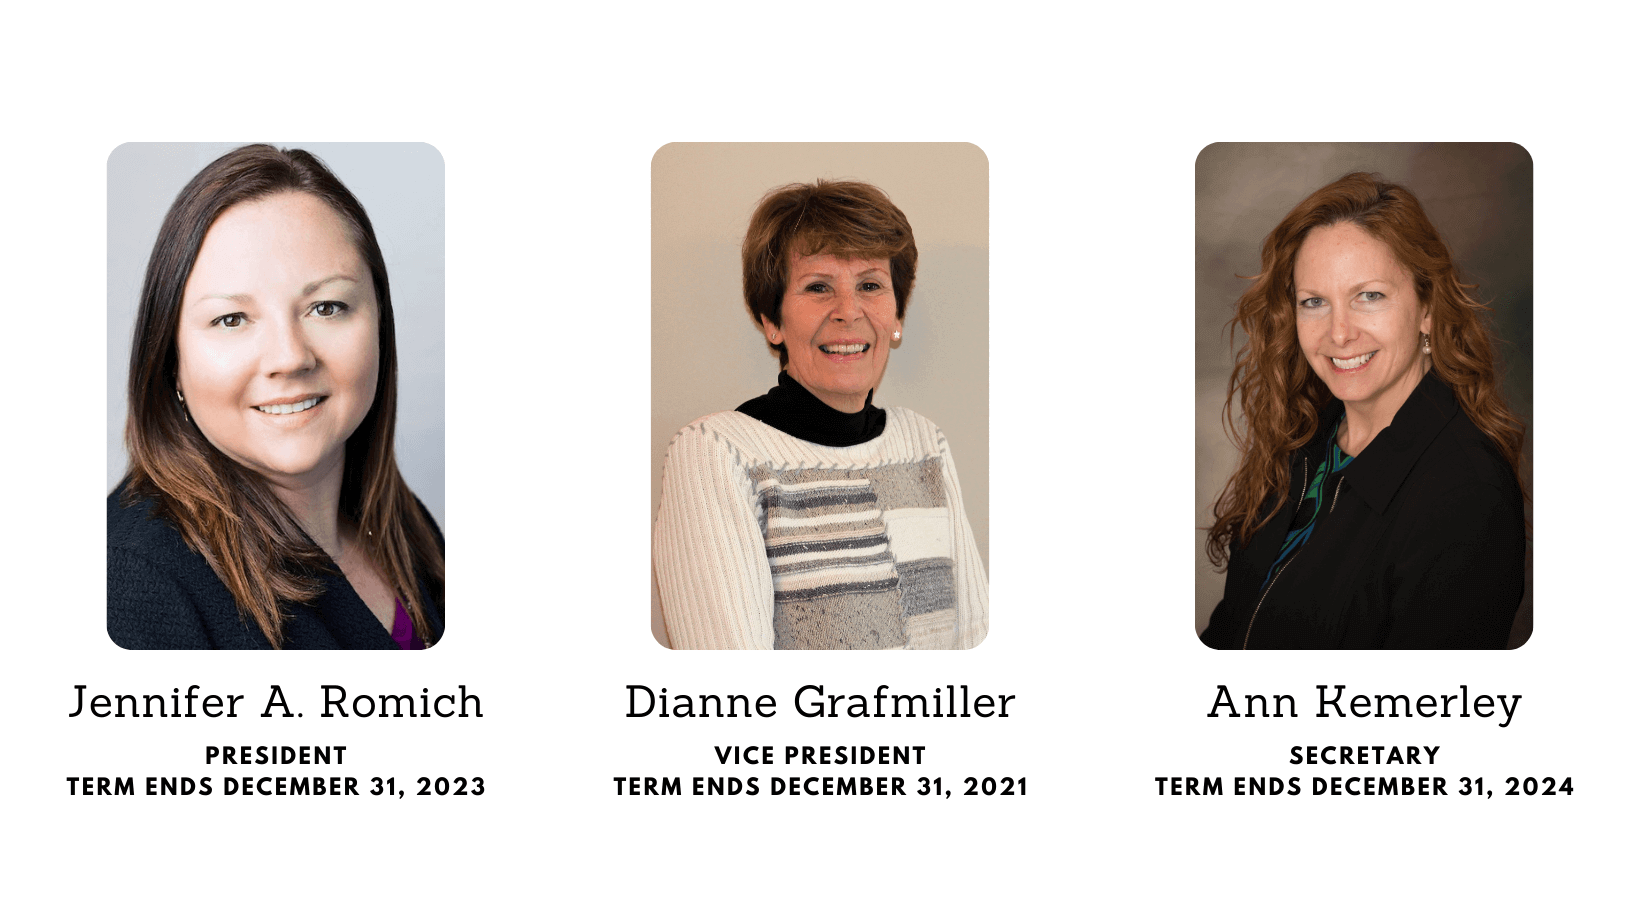 Board of Trustees members President Jennifer Romich, Vice President Dianne Grafmiller, Secretary Ann Kemerley